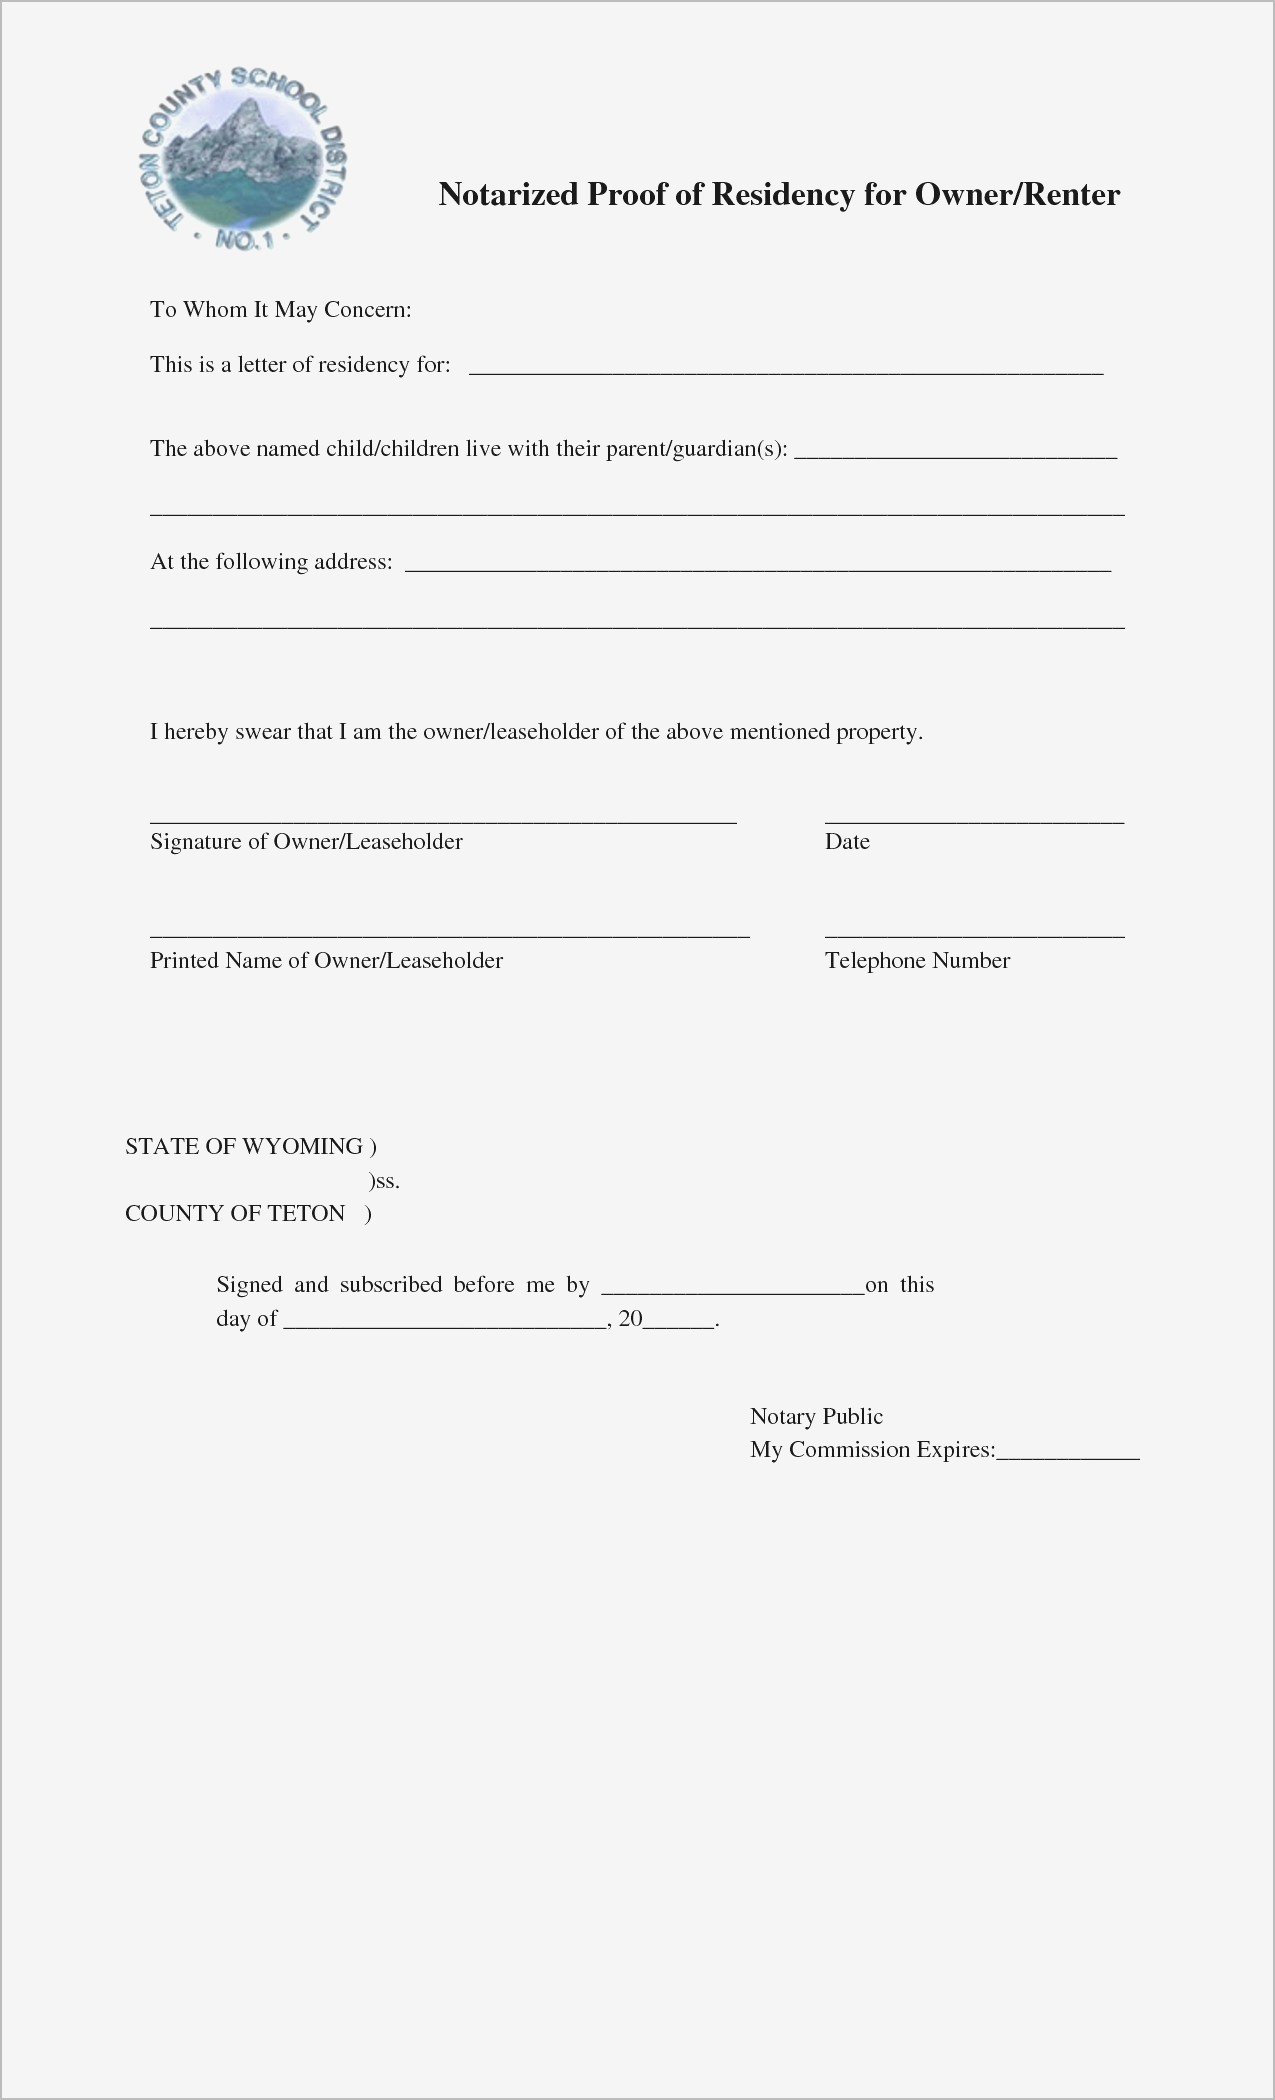 Proof Of Residency Letter Notarized Template - Notary forms New Printable Notarized Letter Residency Template